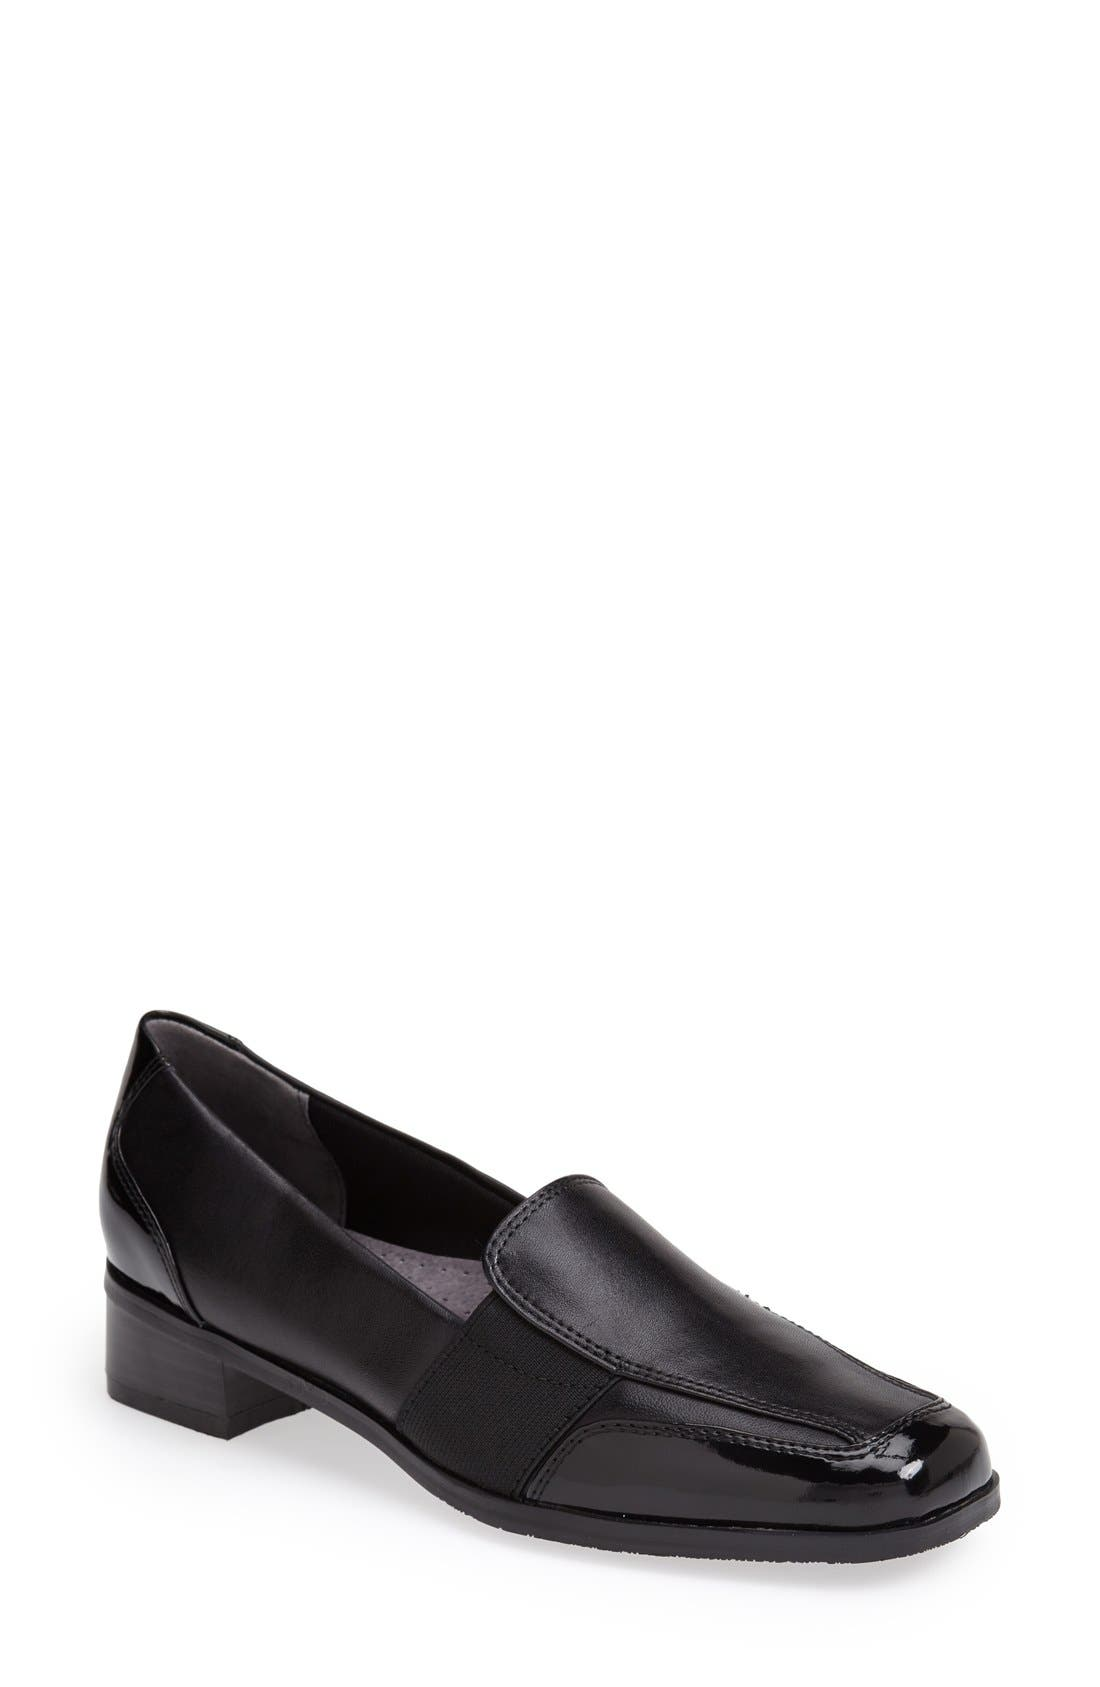 'Arianna' Loafer,                         Main,                         color, Black